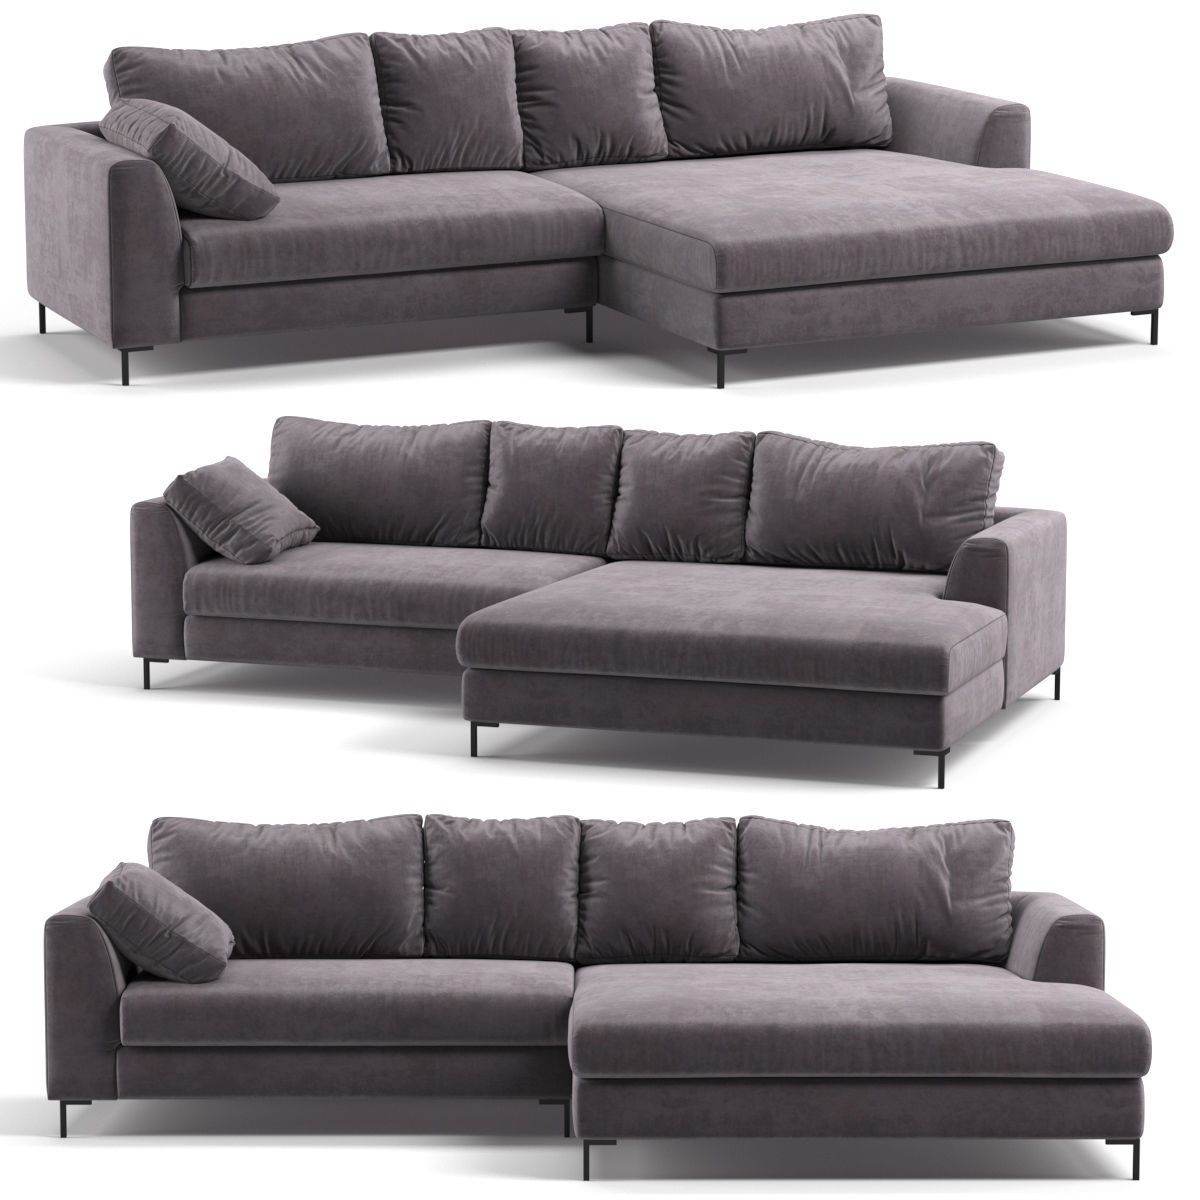 Incredible Kare Corner Sofa Black Gianna Velvet Grey Right 3D Model Caraccident5 Cool Chair Designs And Ideas Caraccident5Info